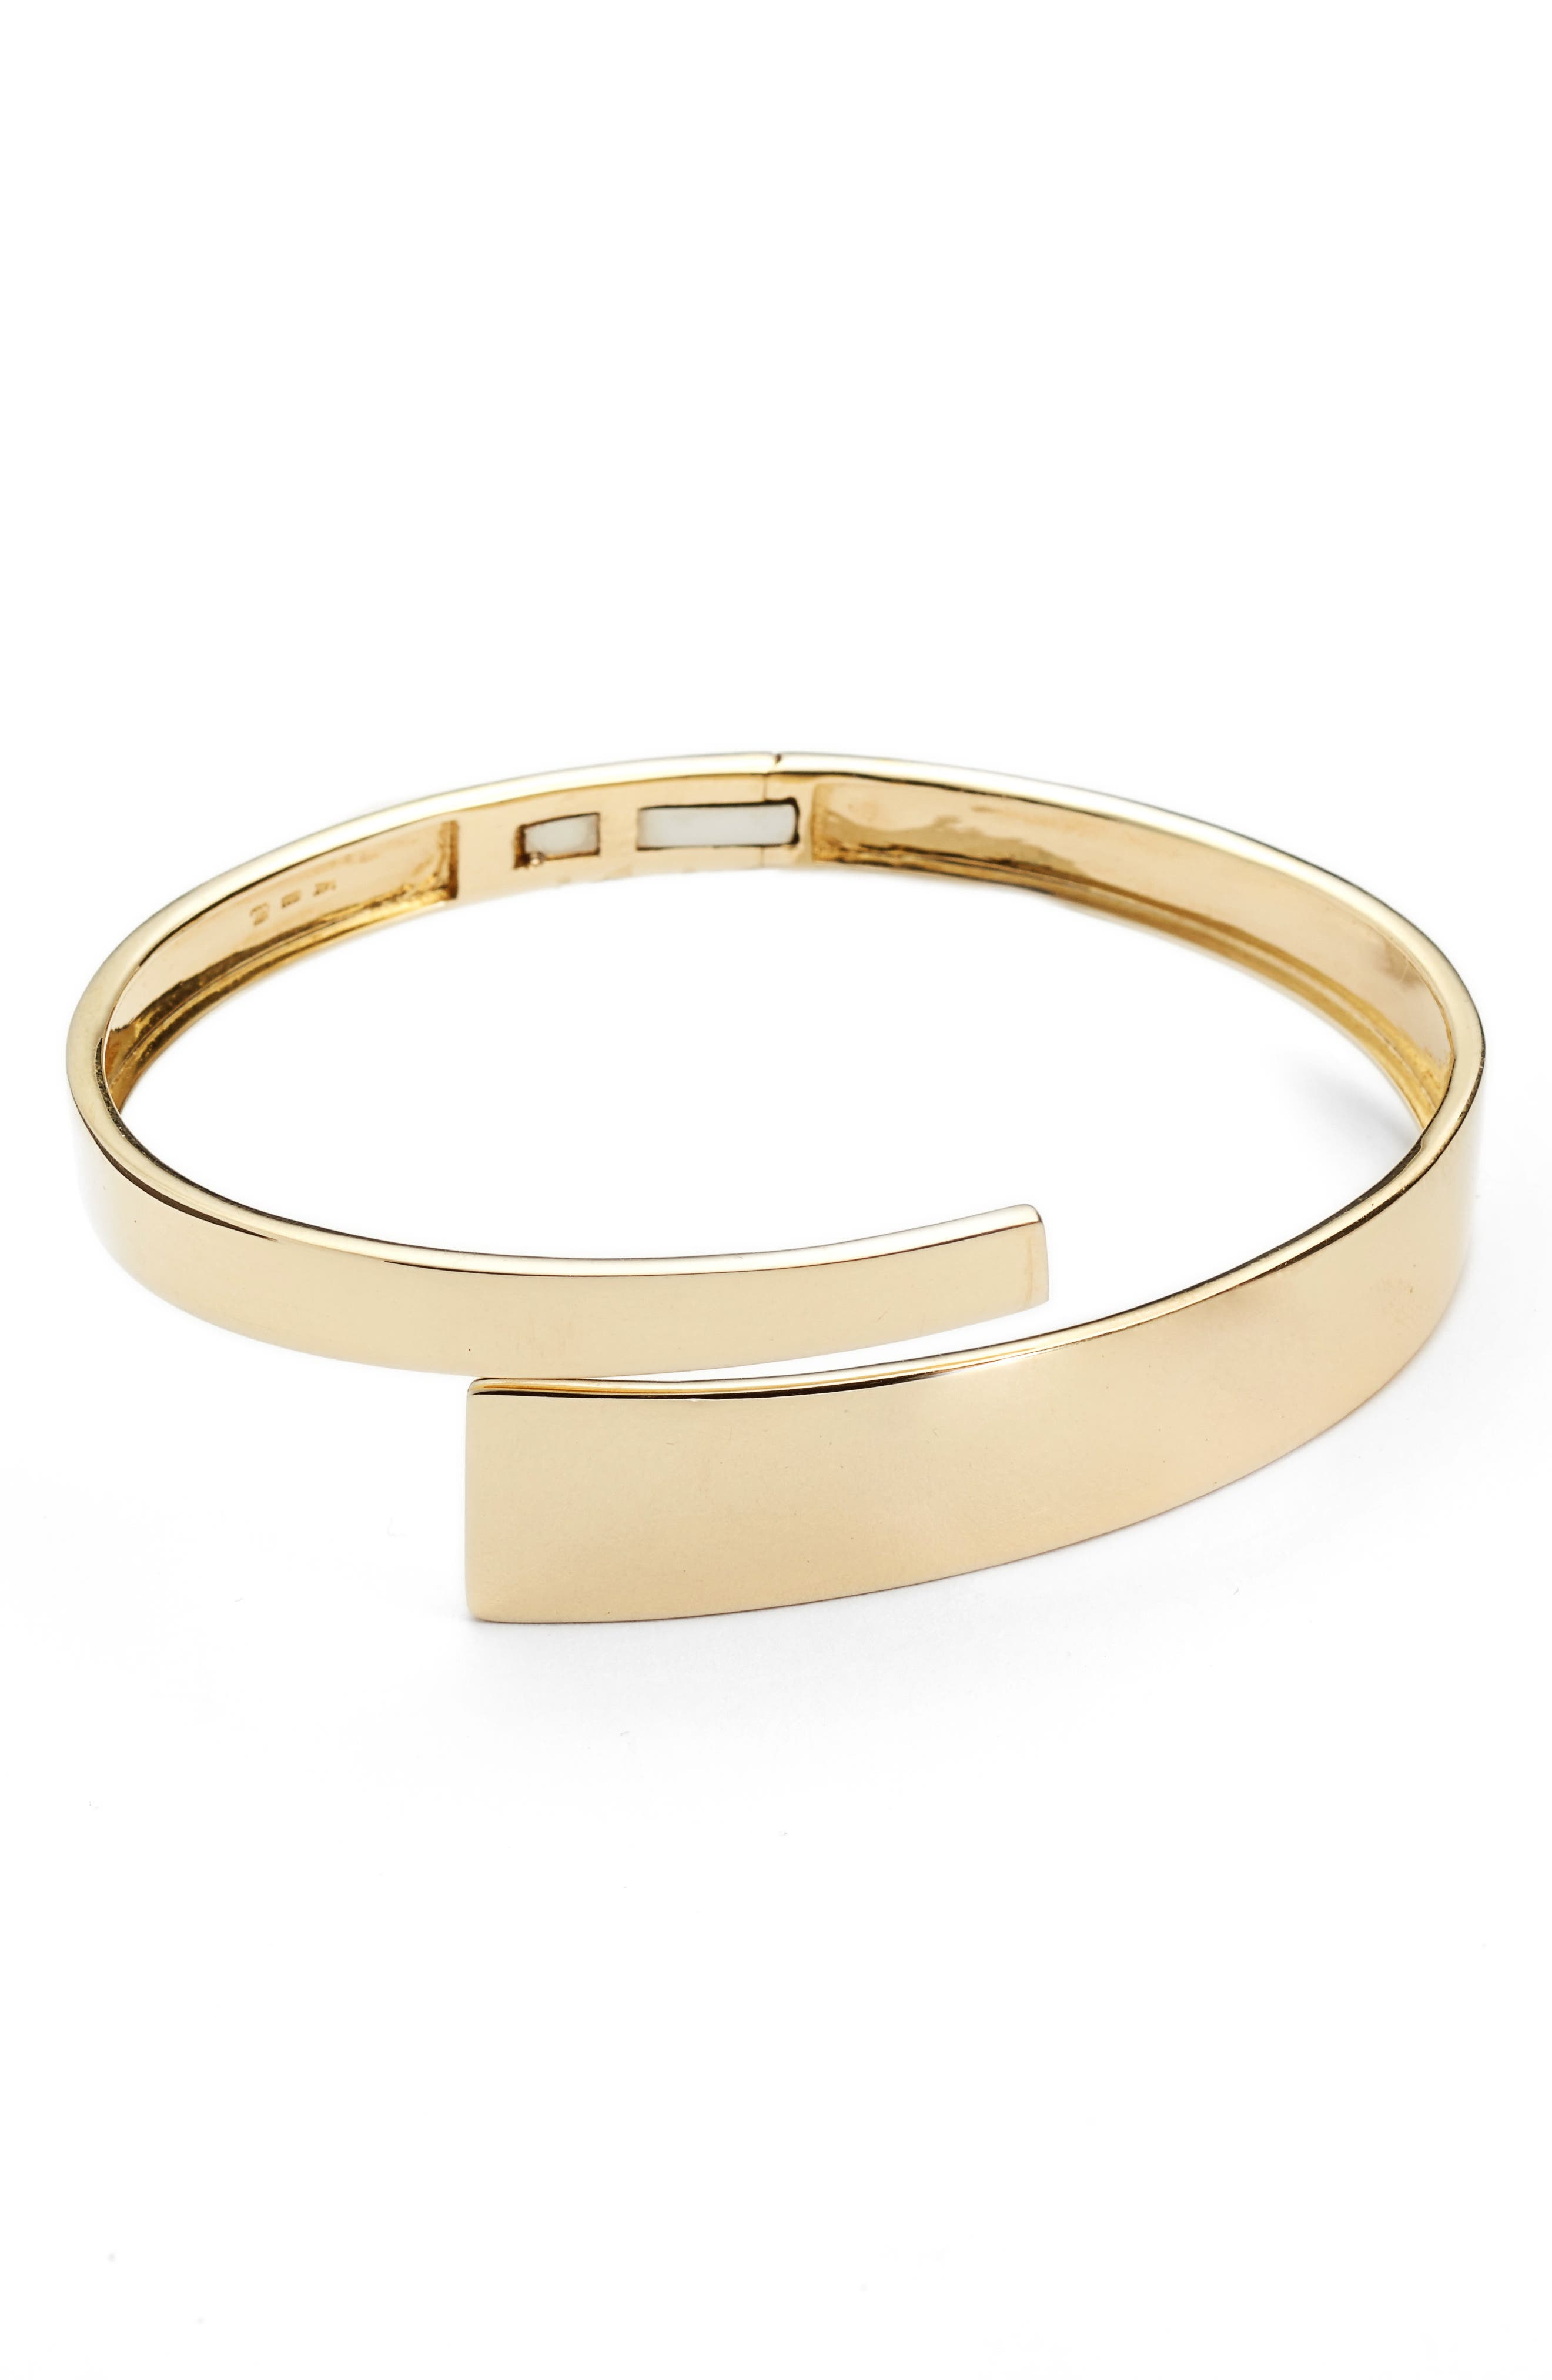 Ofira Open Wrap Bangle,                             Main thumbnail 1, color,                             YELLOW GOLD